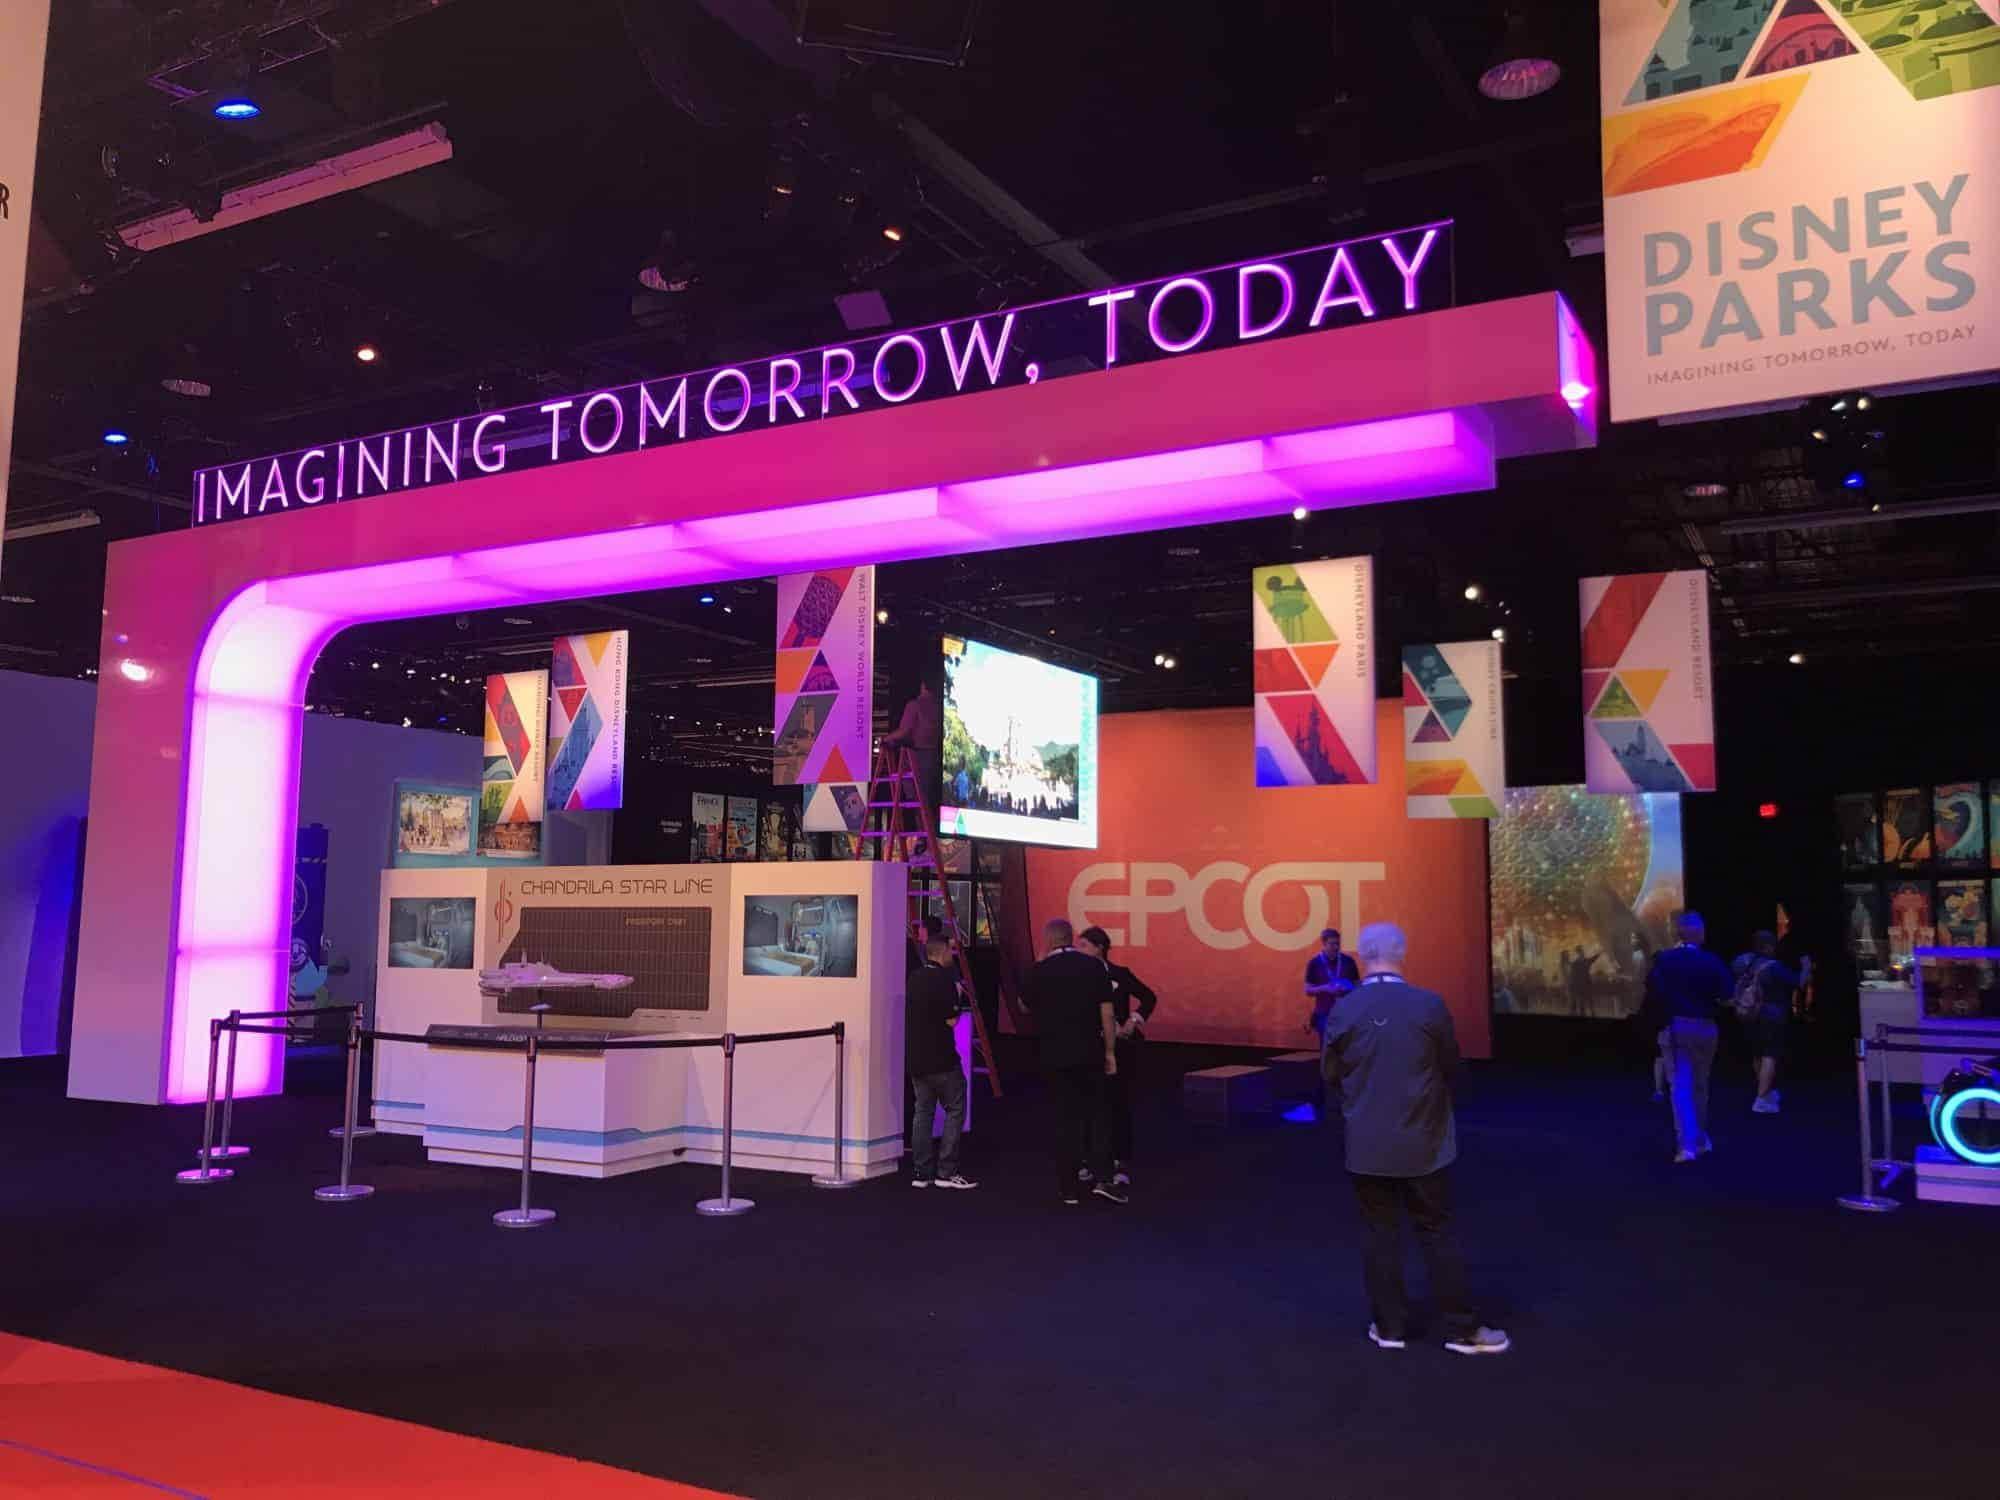 Disney Parks Pavilion at D23 Expo 2019